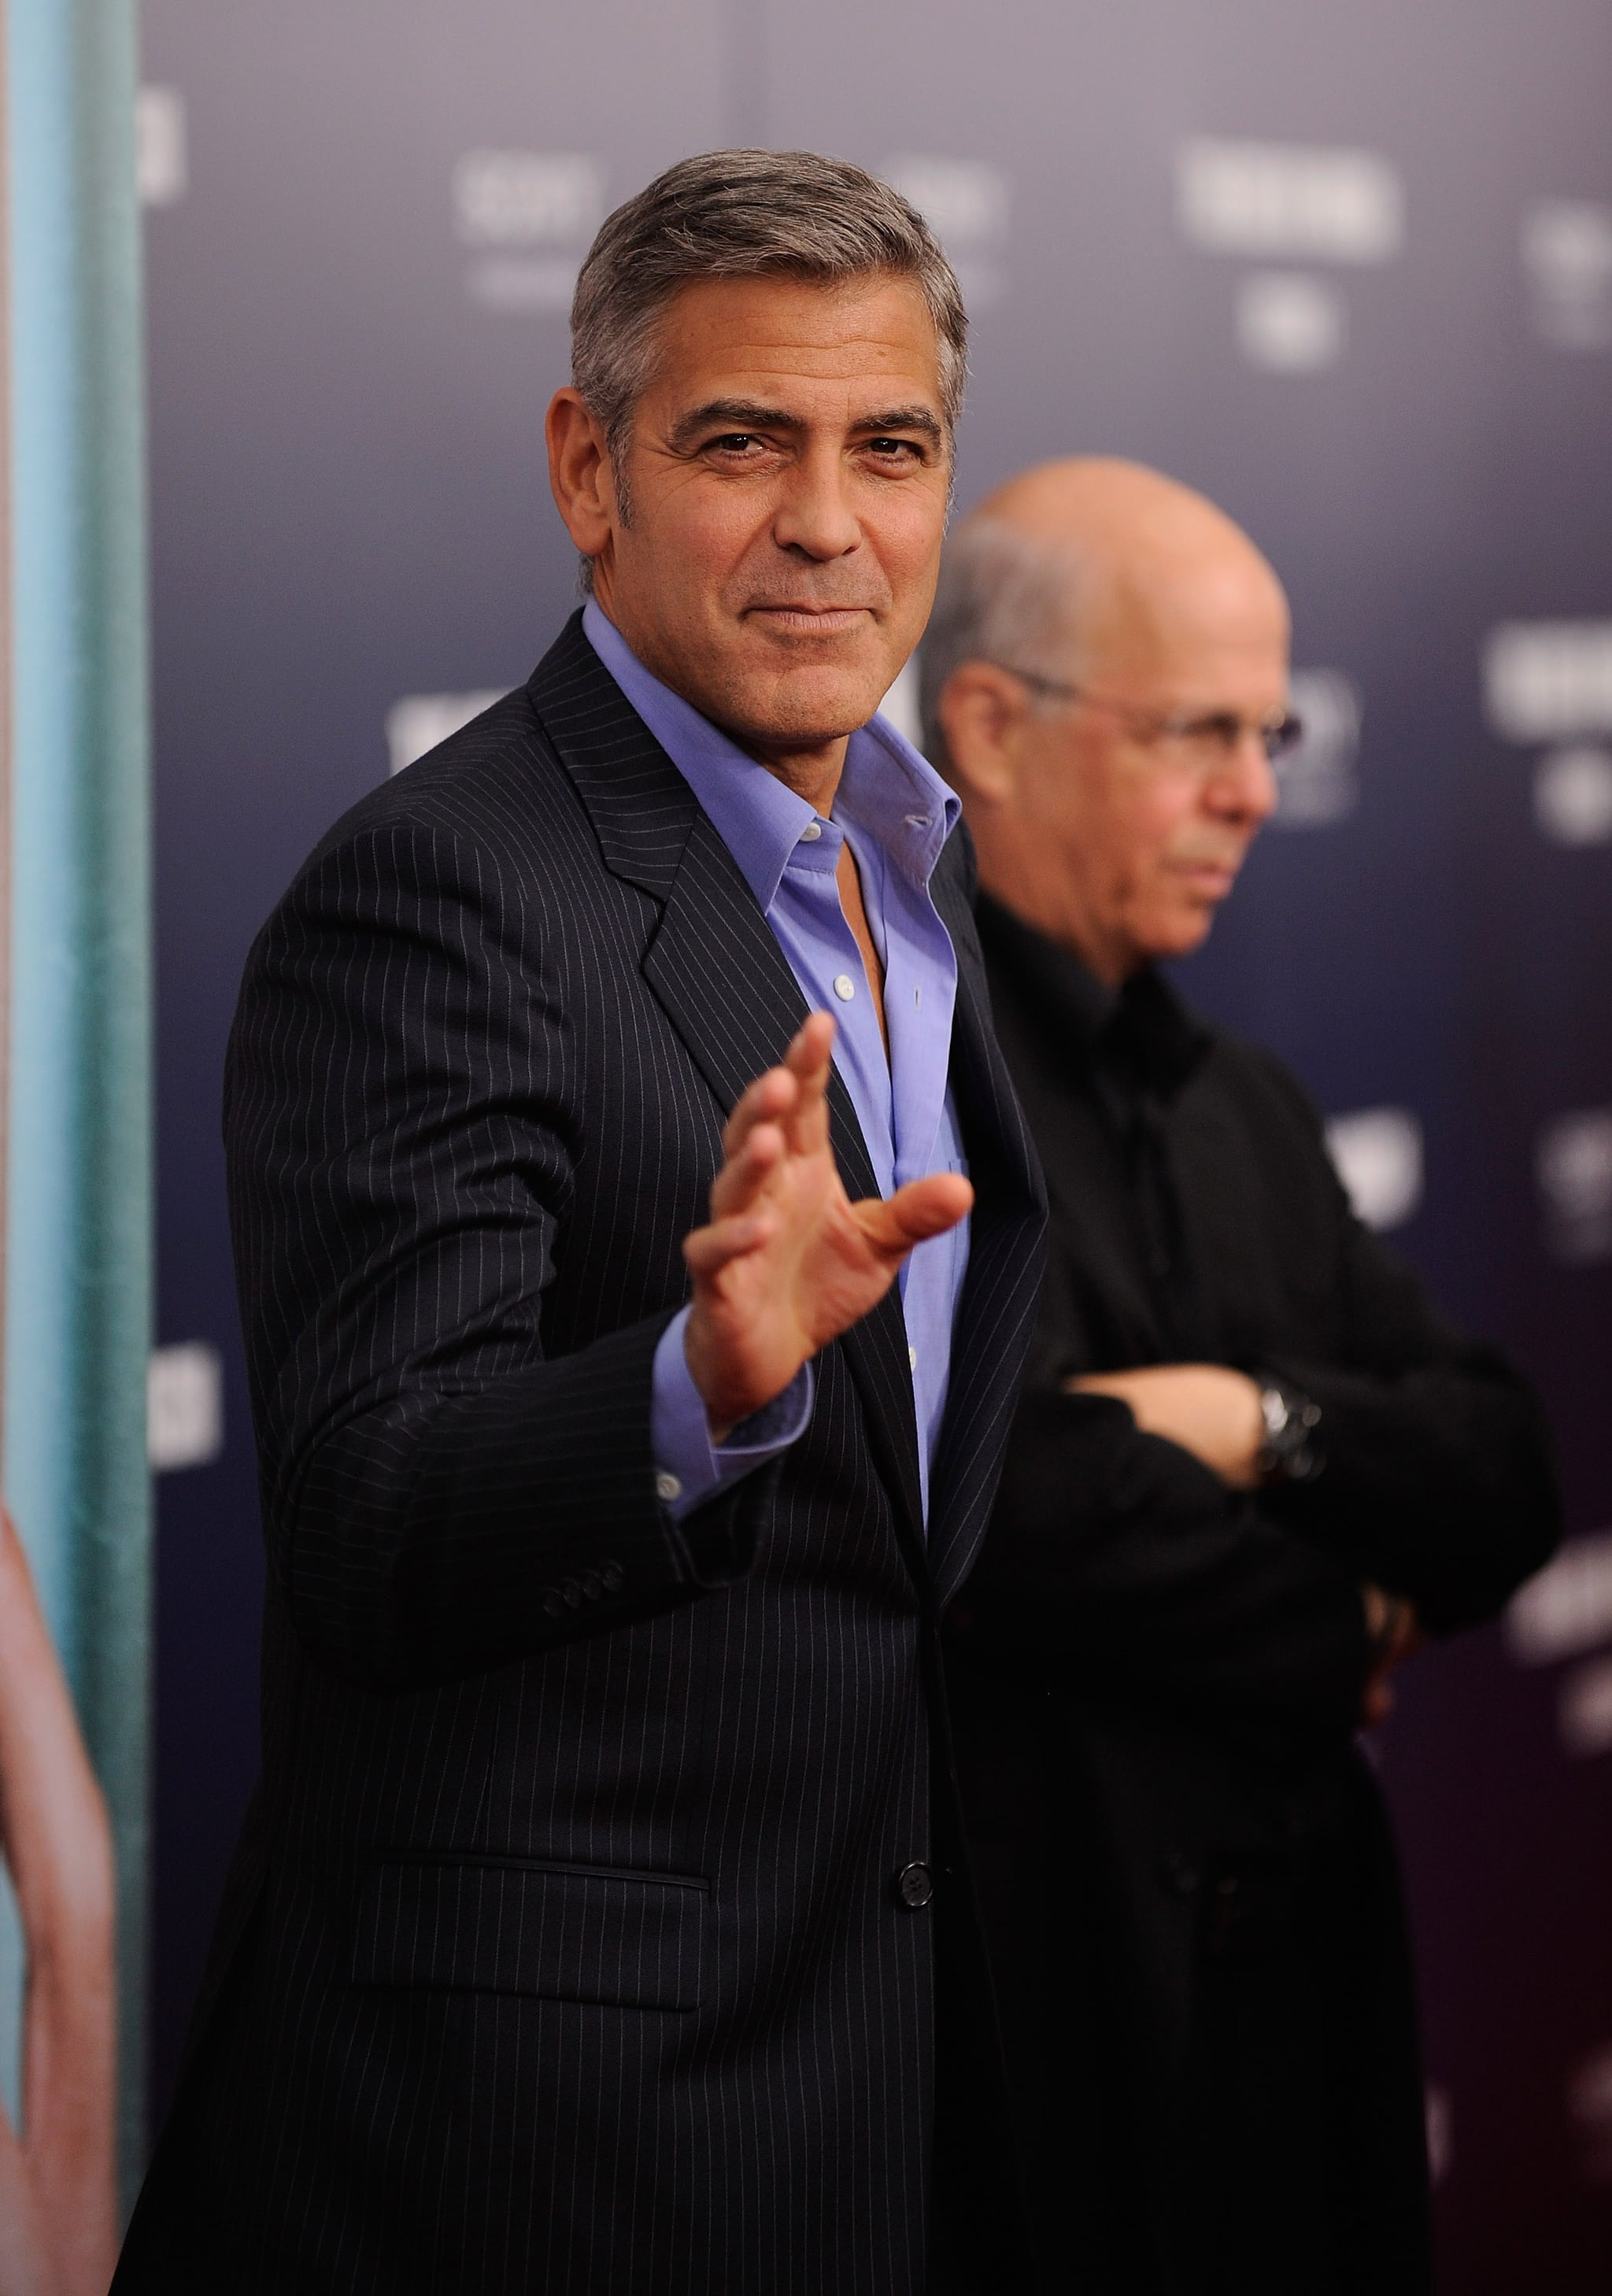 George Clooney at NYC's Ziegfeld Theater for the premiere of The Ides of March.